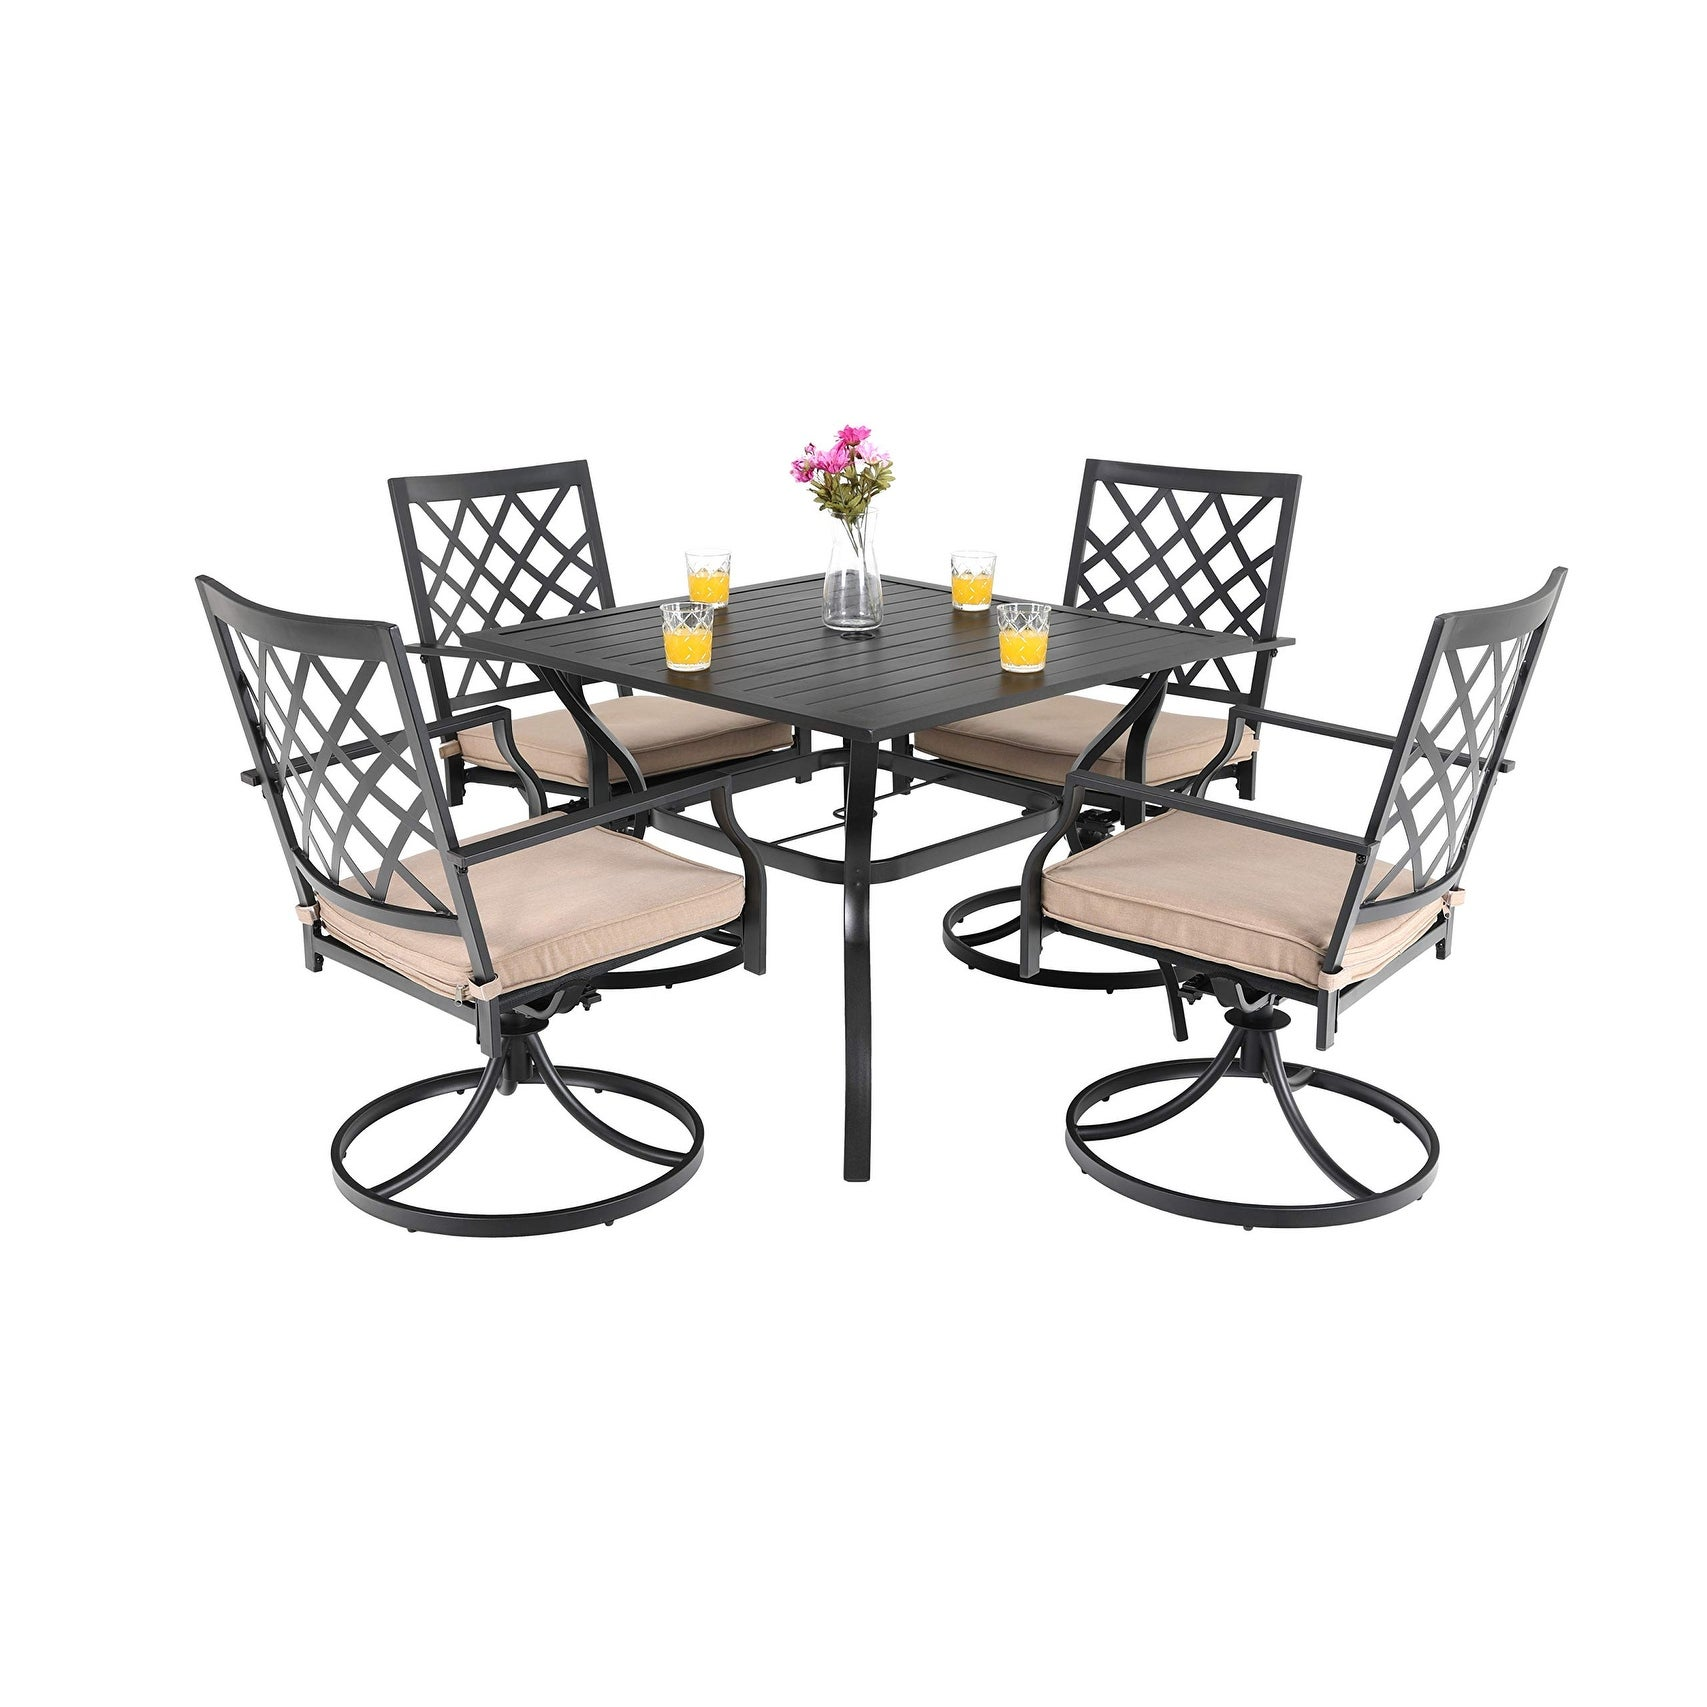 Viewmont 5 Piece Outdoor Dining Set With Large Table And 4 Swivel Chairs By Havenside Home Overstock 29156340